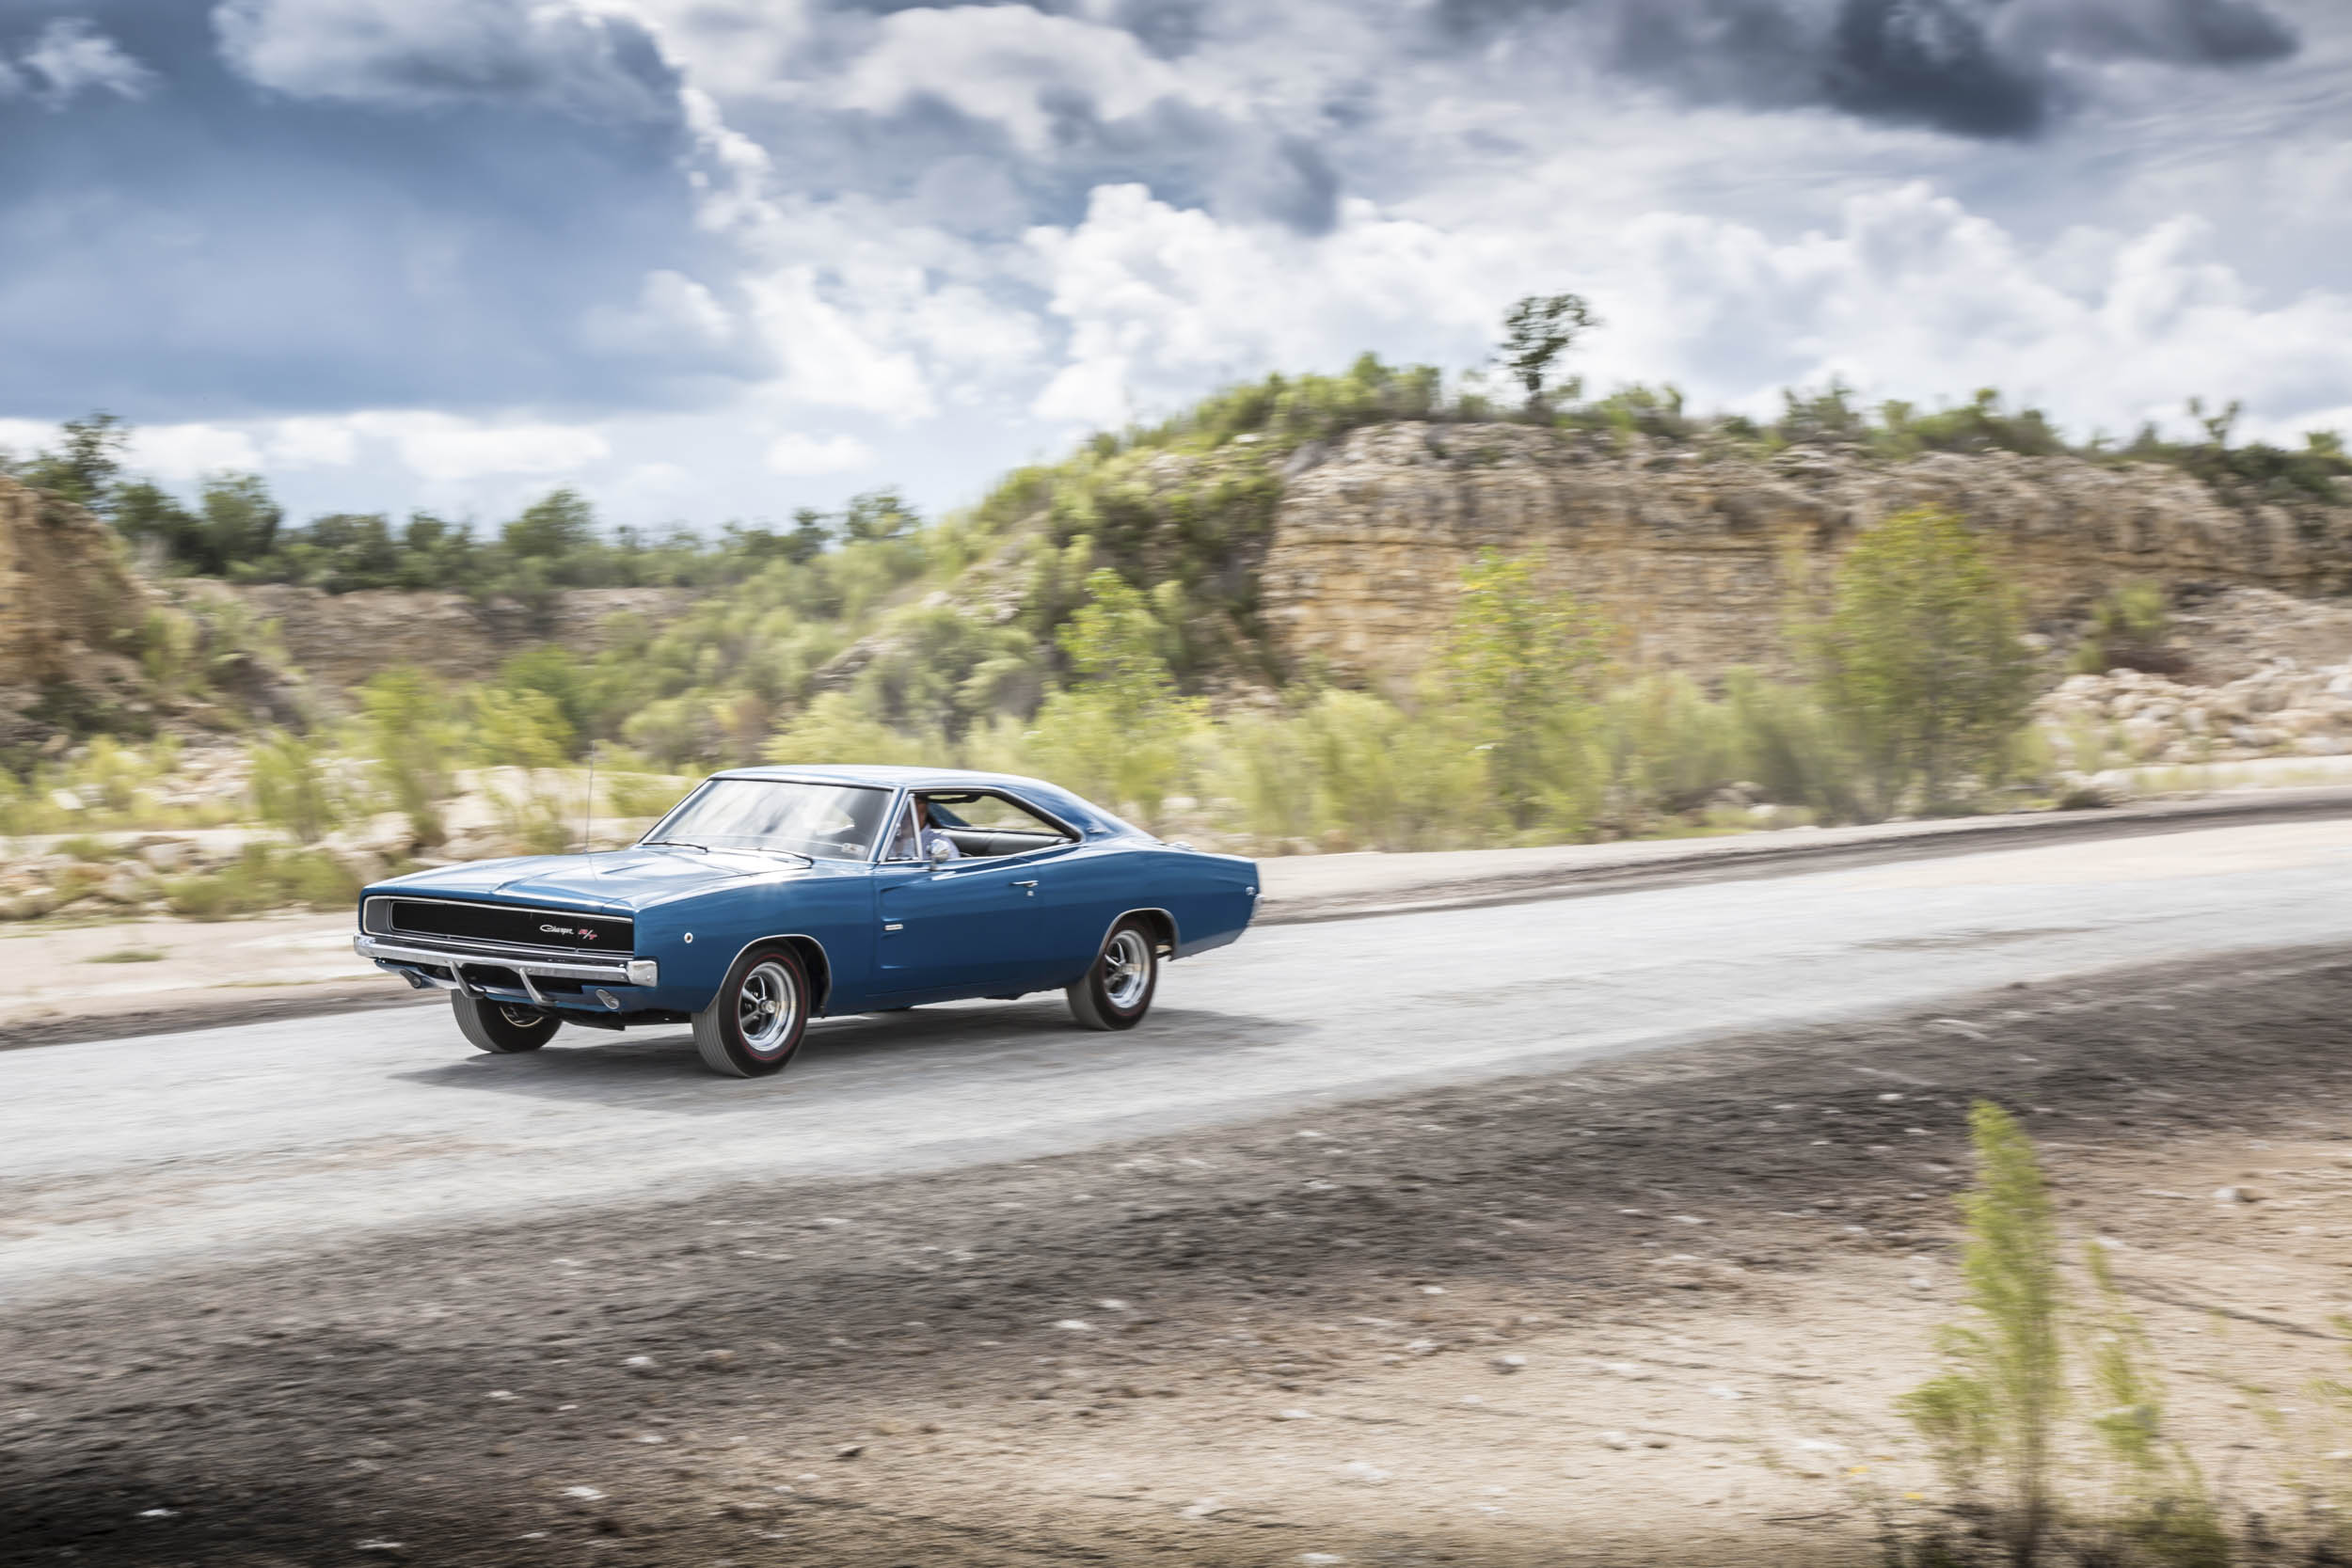 1968 Dodge Charger R/T driving